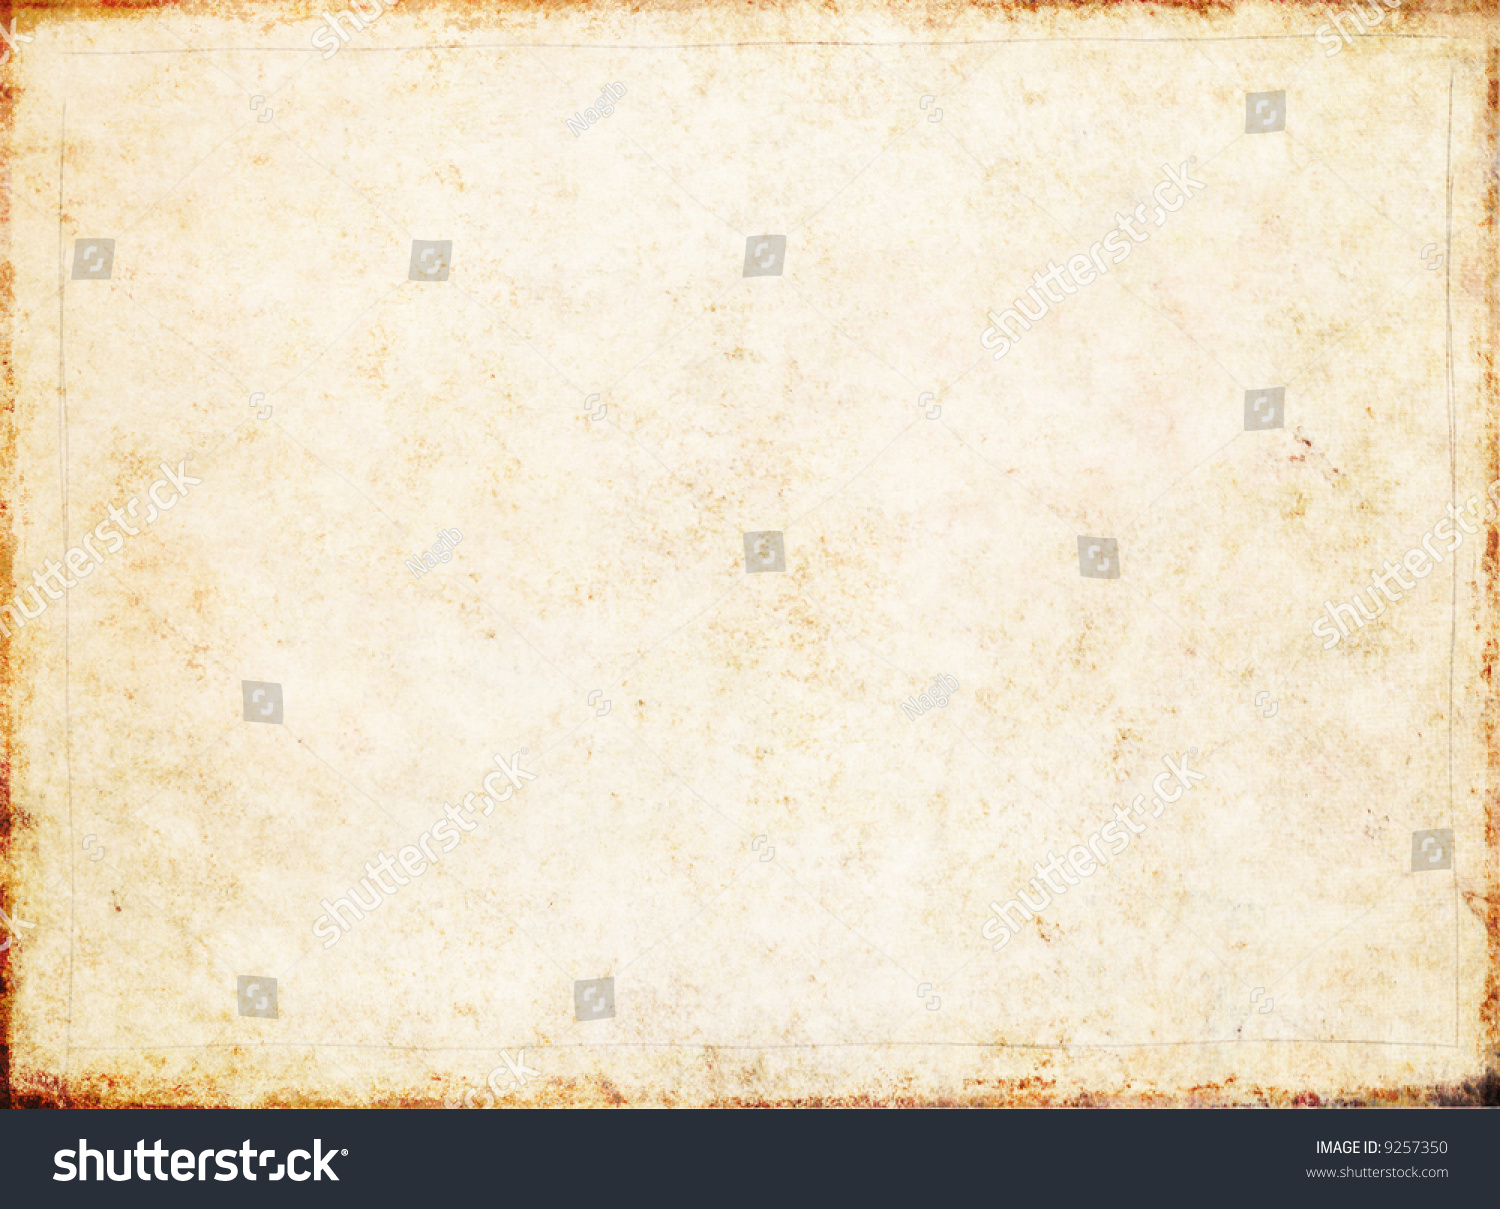 Abstract Light Brown Background Image With Interesting ... - photo#6